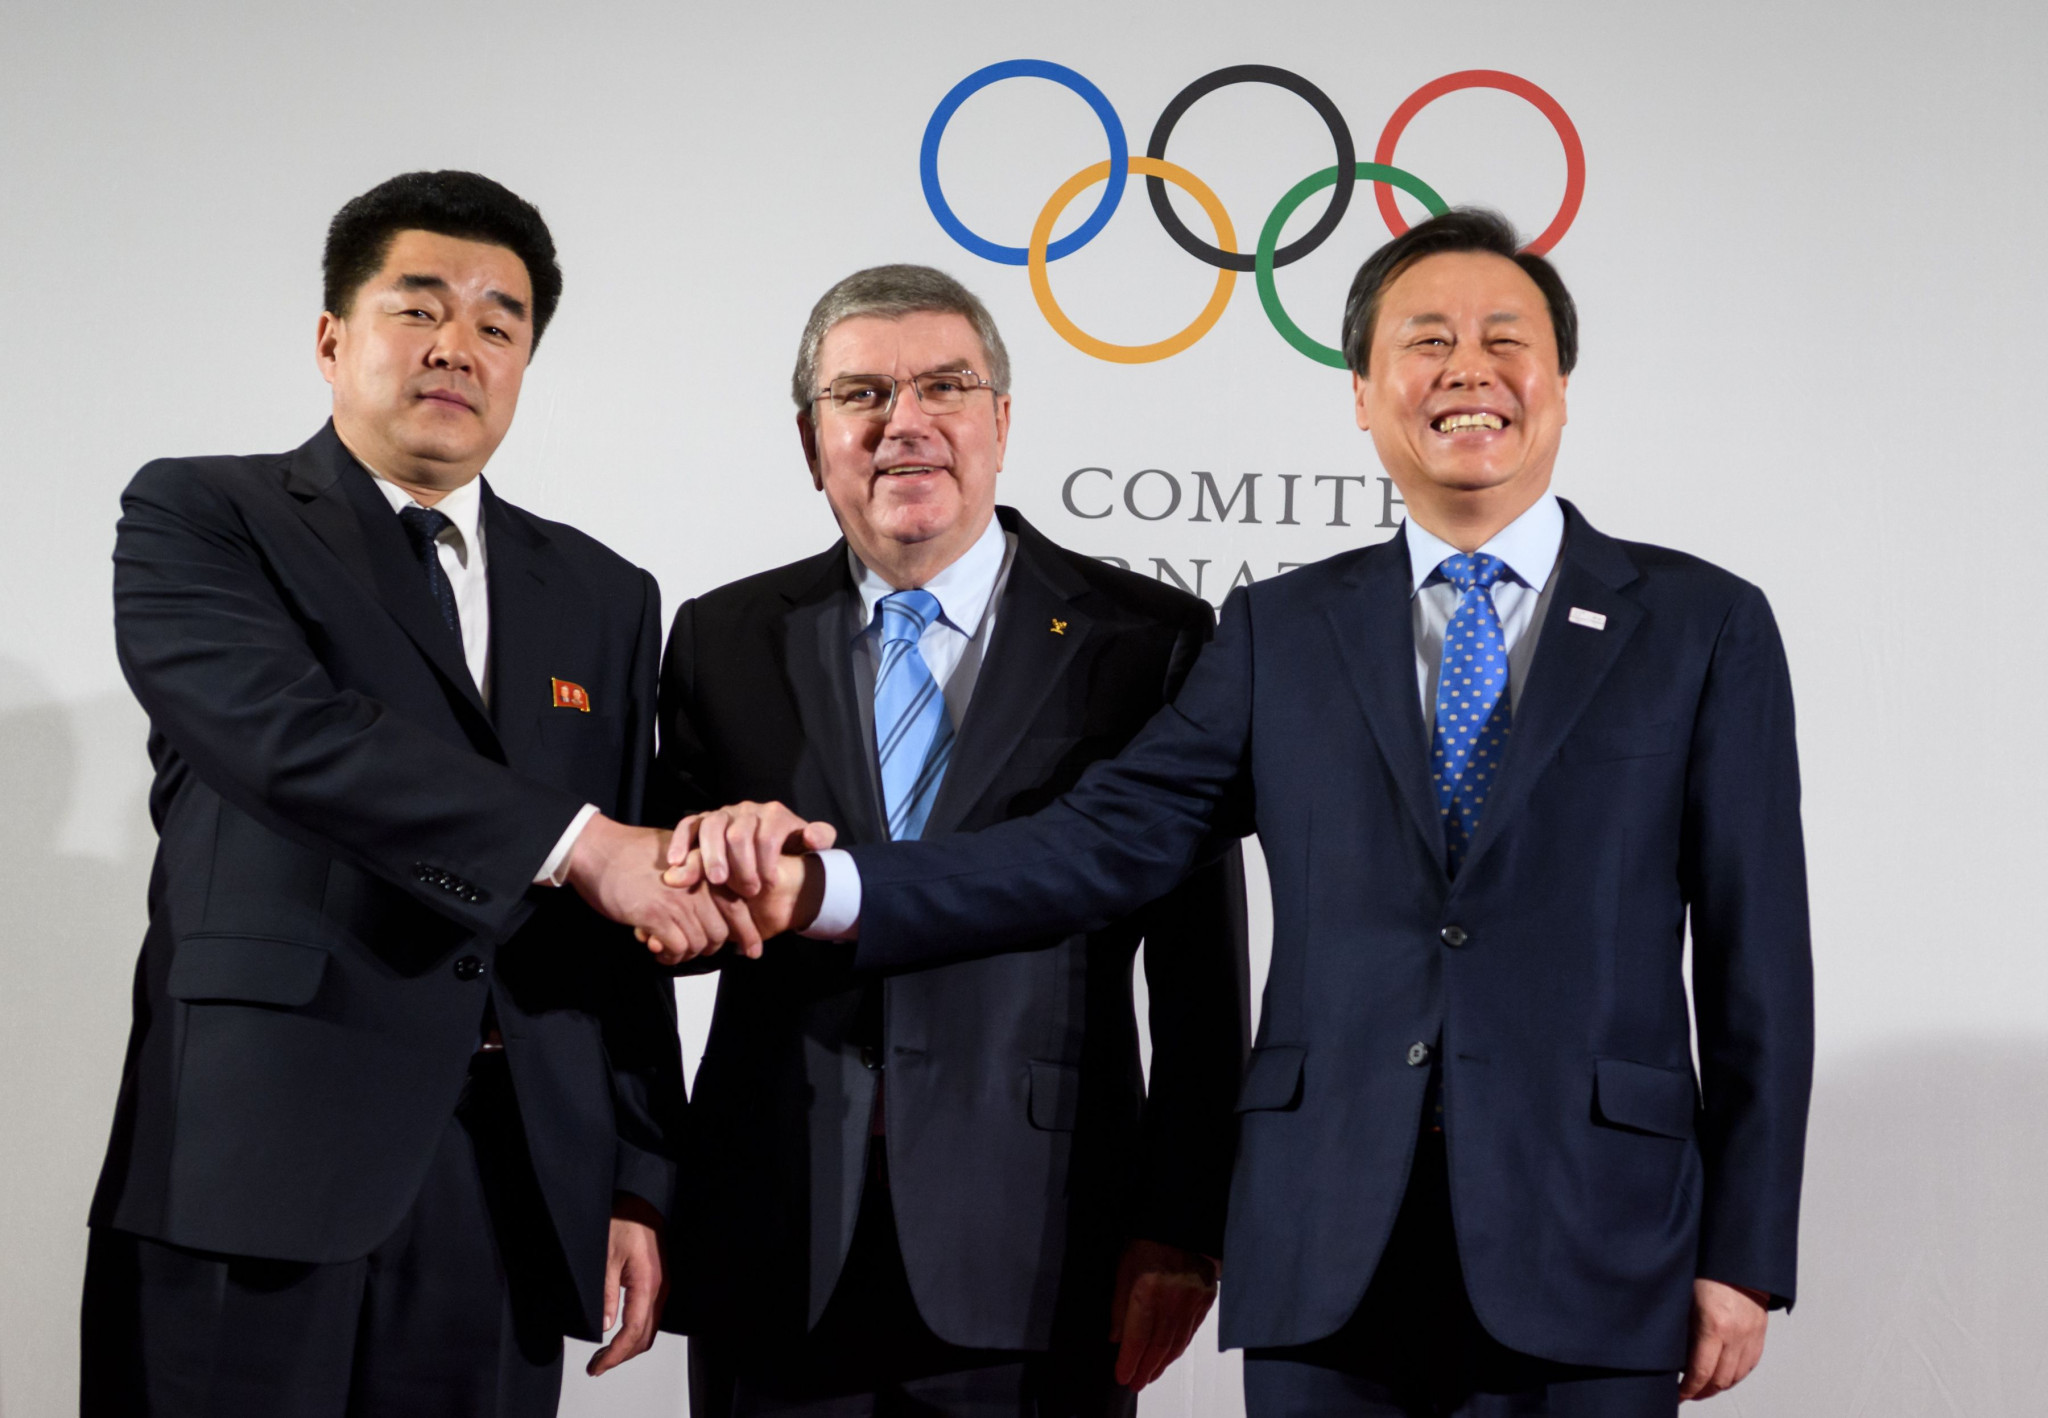 Do Jong-hwan, right, claims he will propose co-hosting the 2032 Olympic Games to North Korean officials next week ©Getty Images